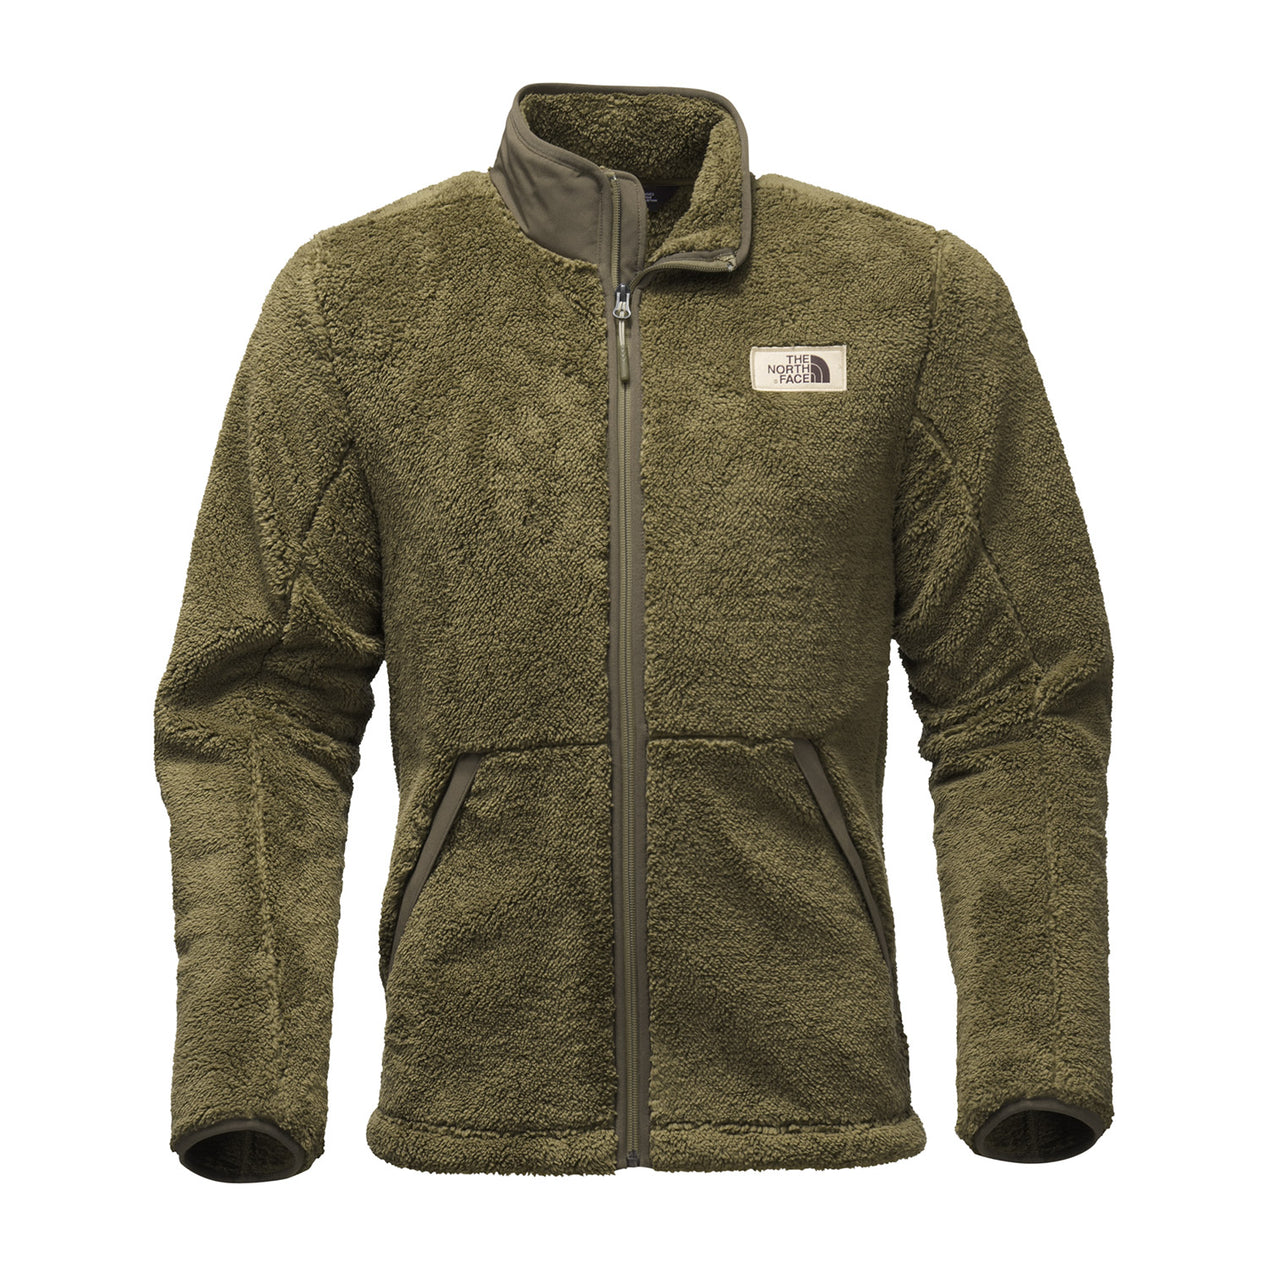 1cc43c6504b0 The North Face Men s Campshire Full Zip